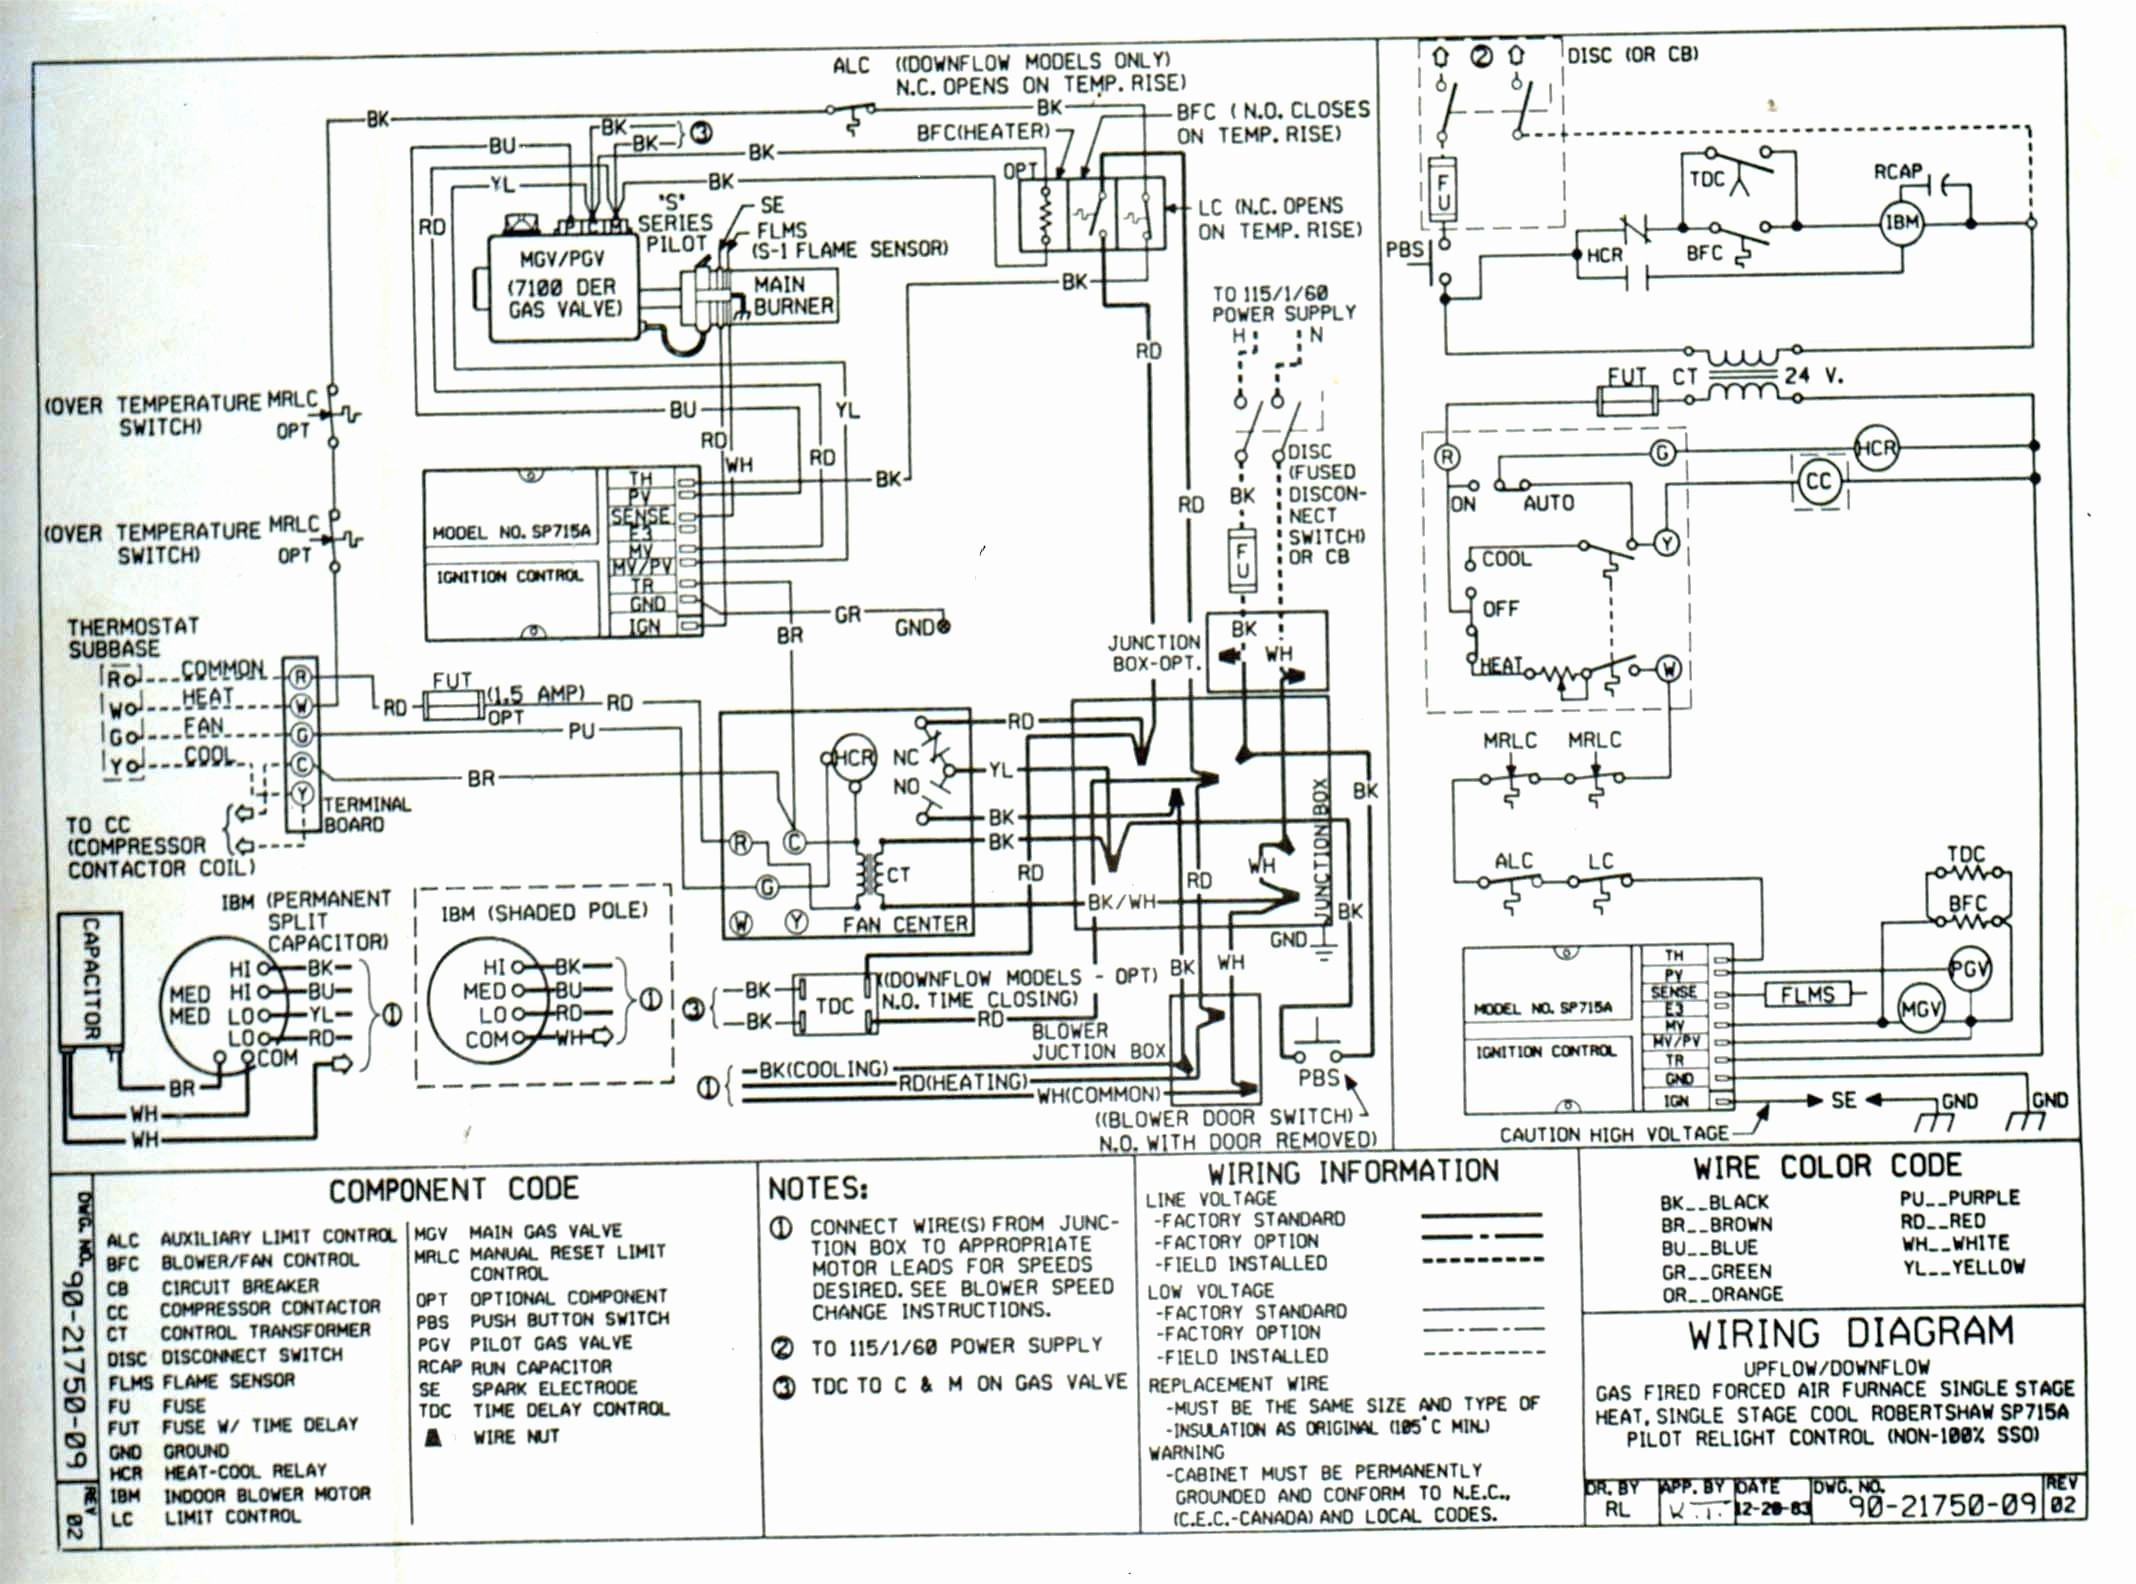 uj7c1k21m electric motor wiring diagram